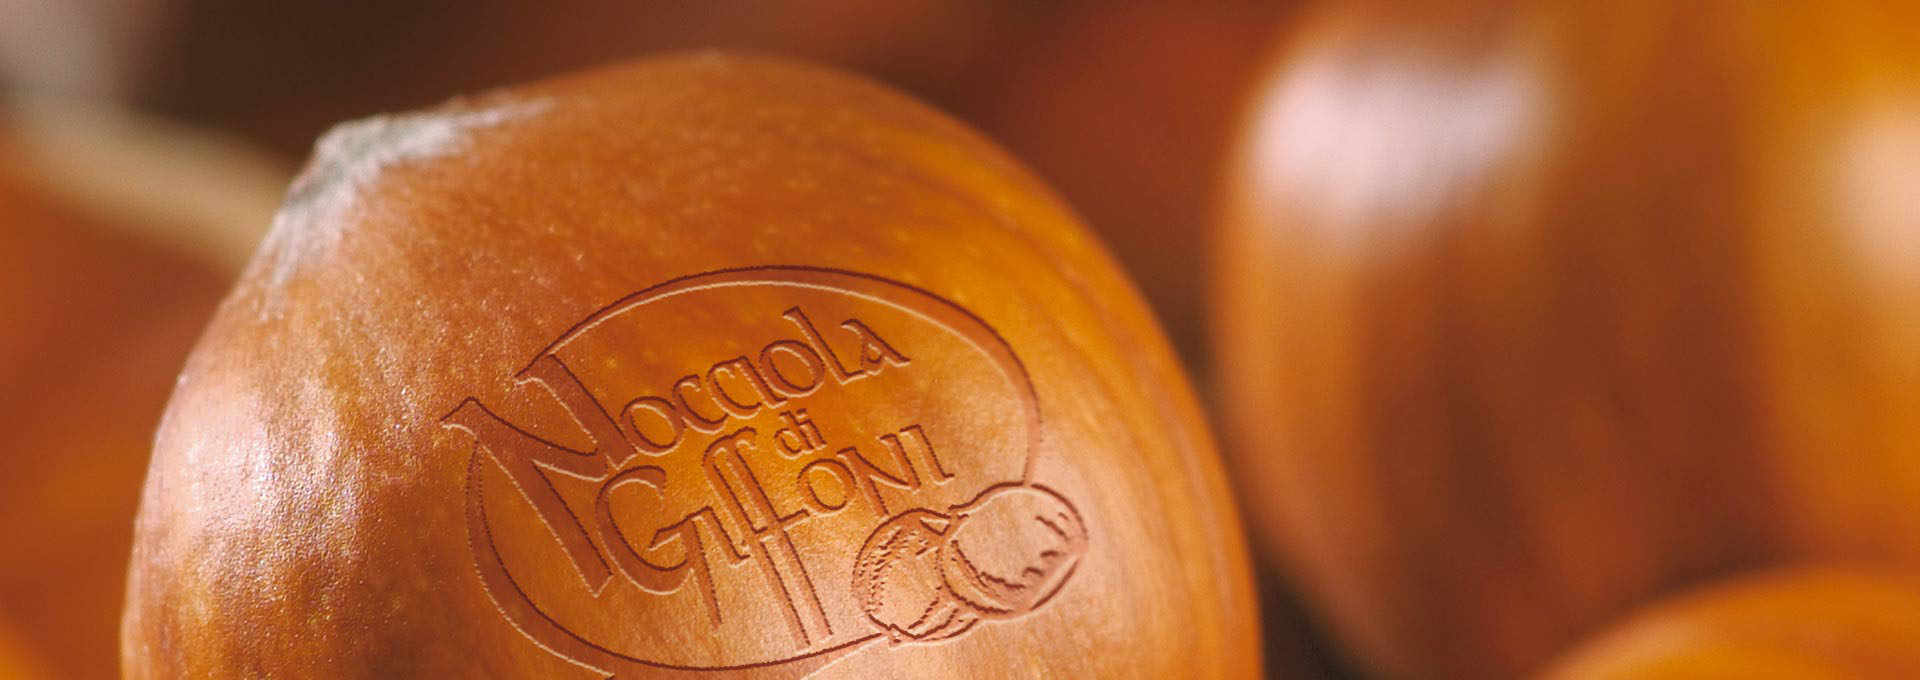 The Giffoni Hazelnut, the quintessence of flavour